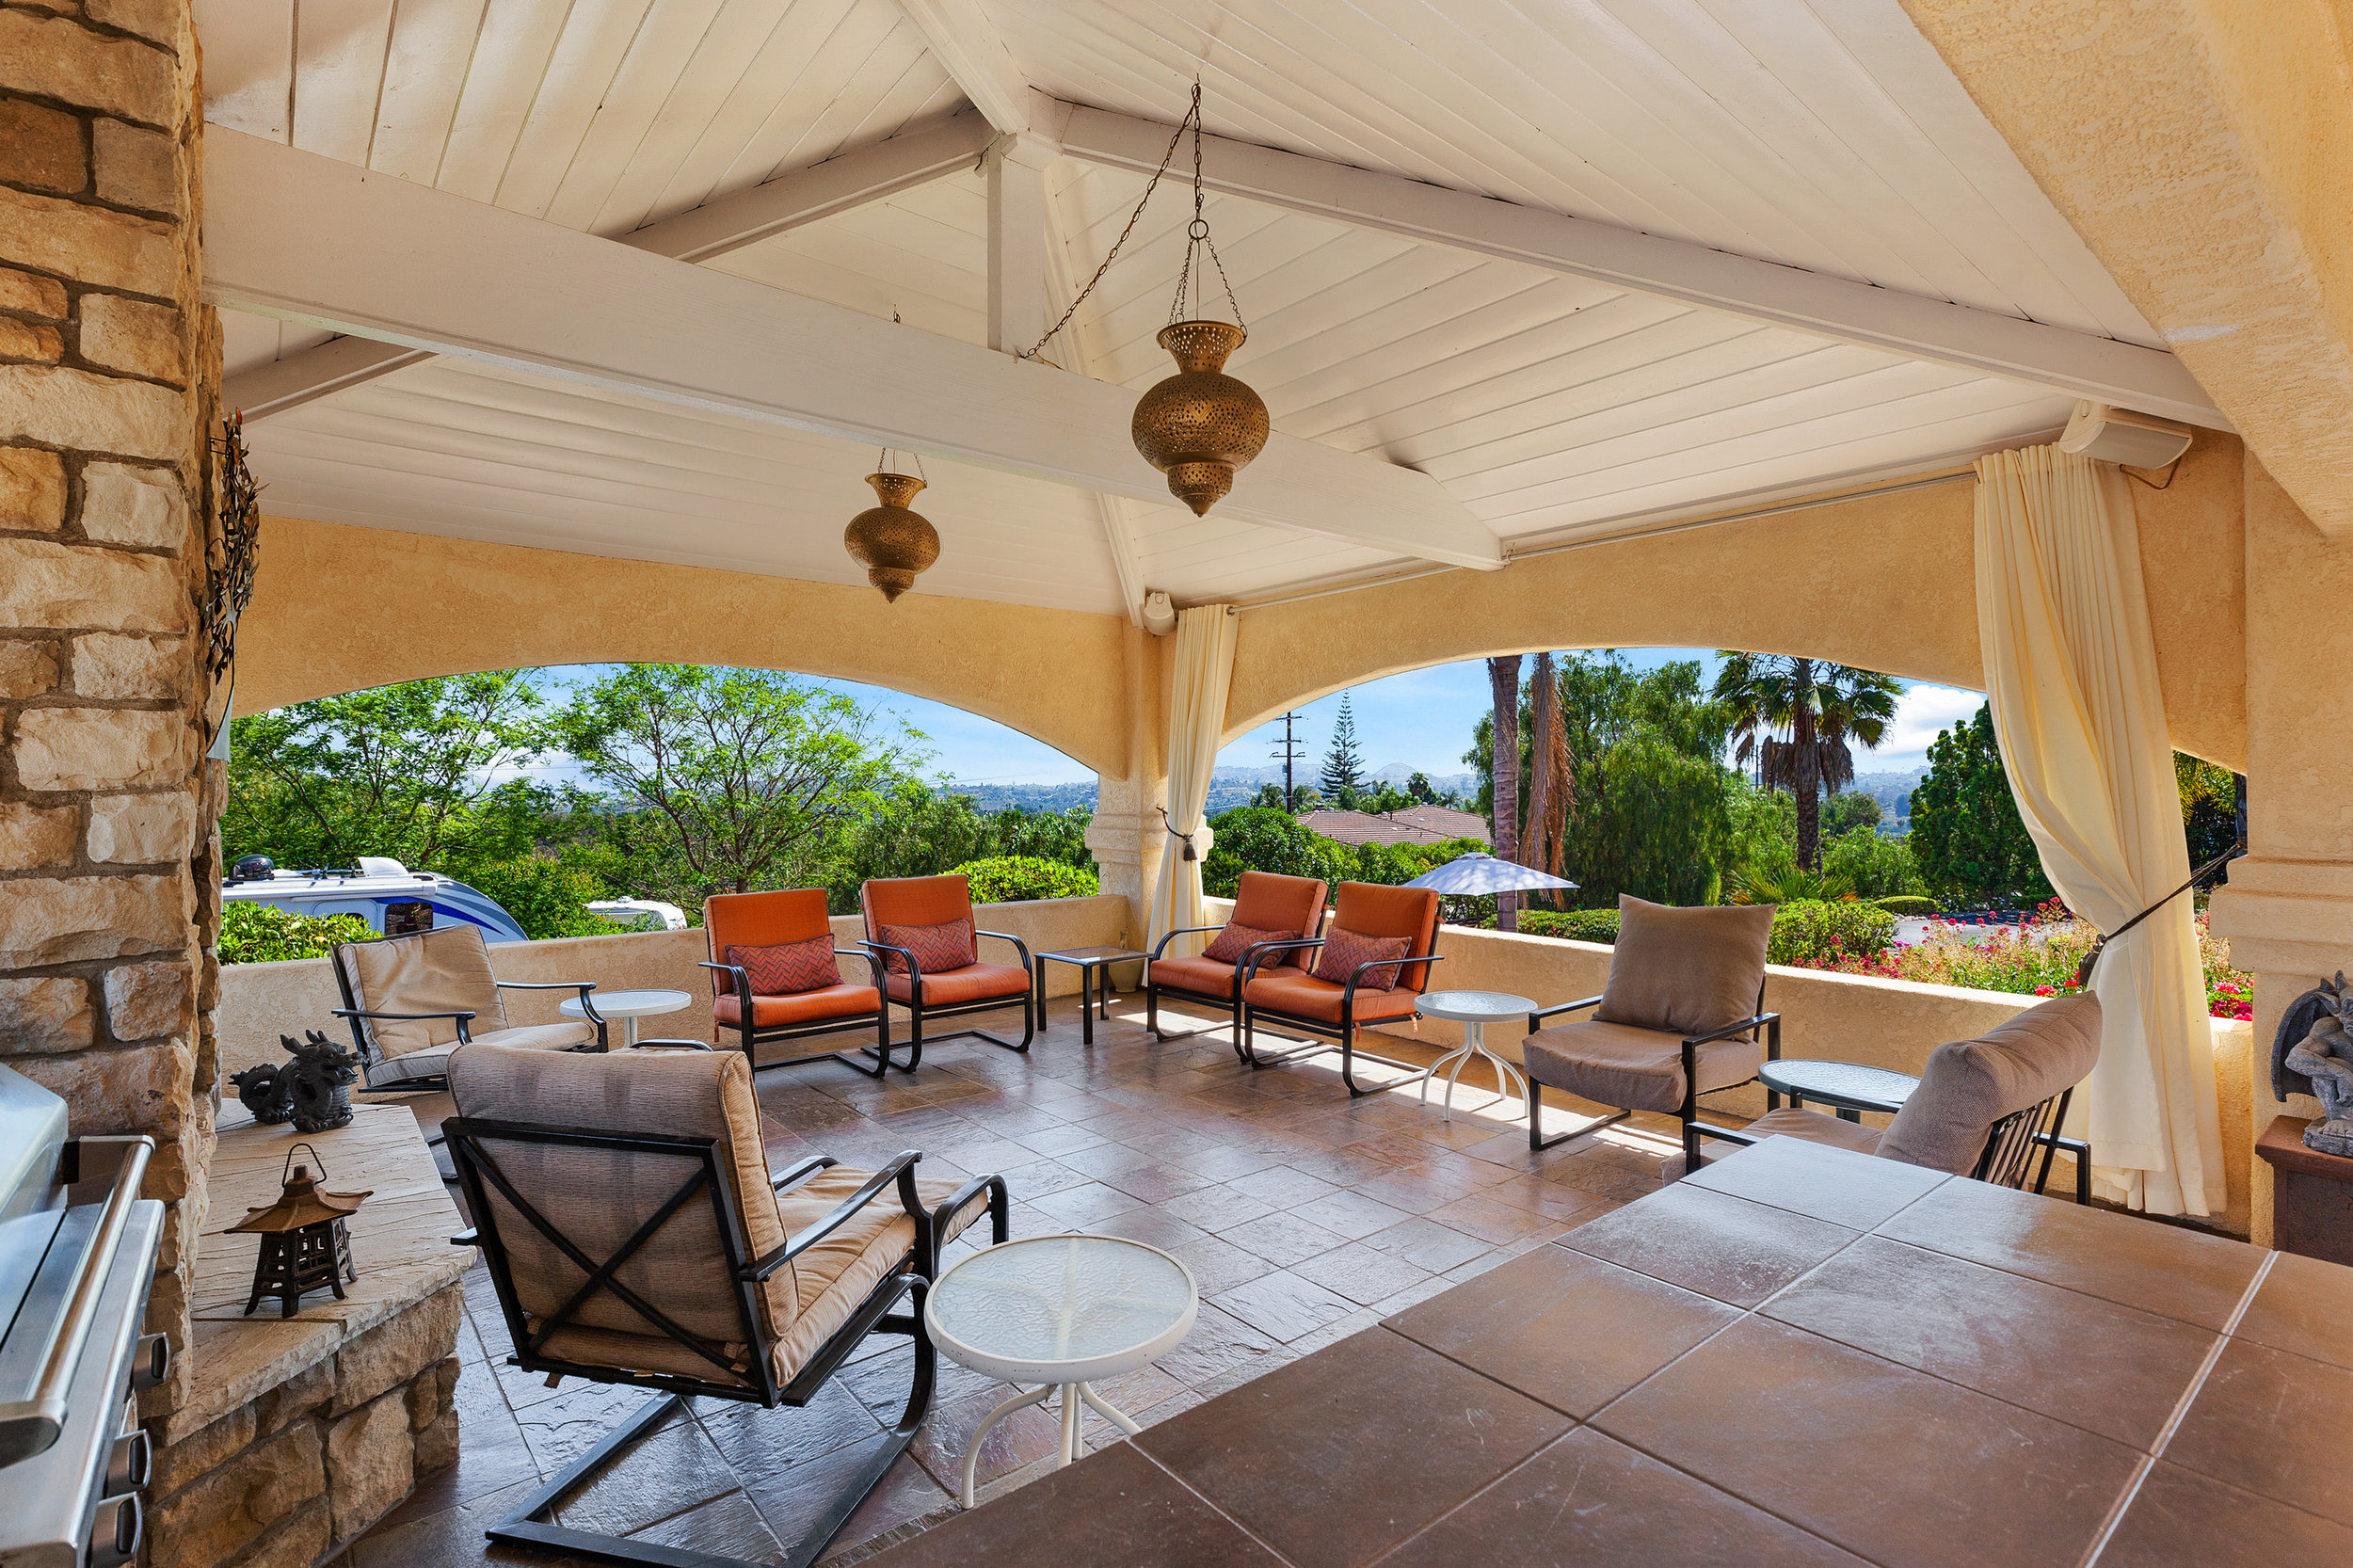 021_Covered Patio.jpg